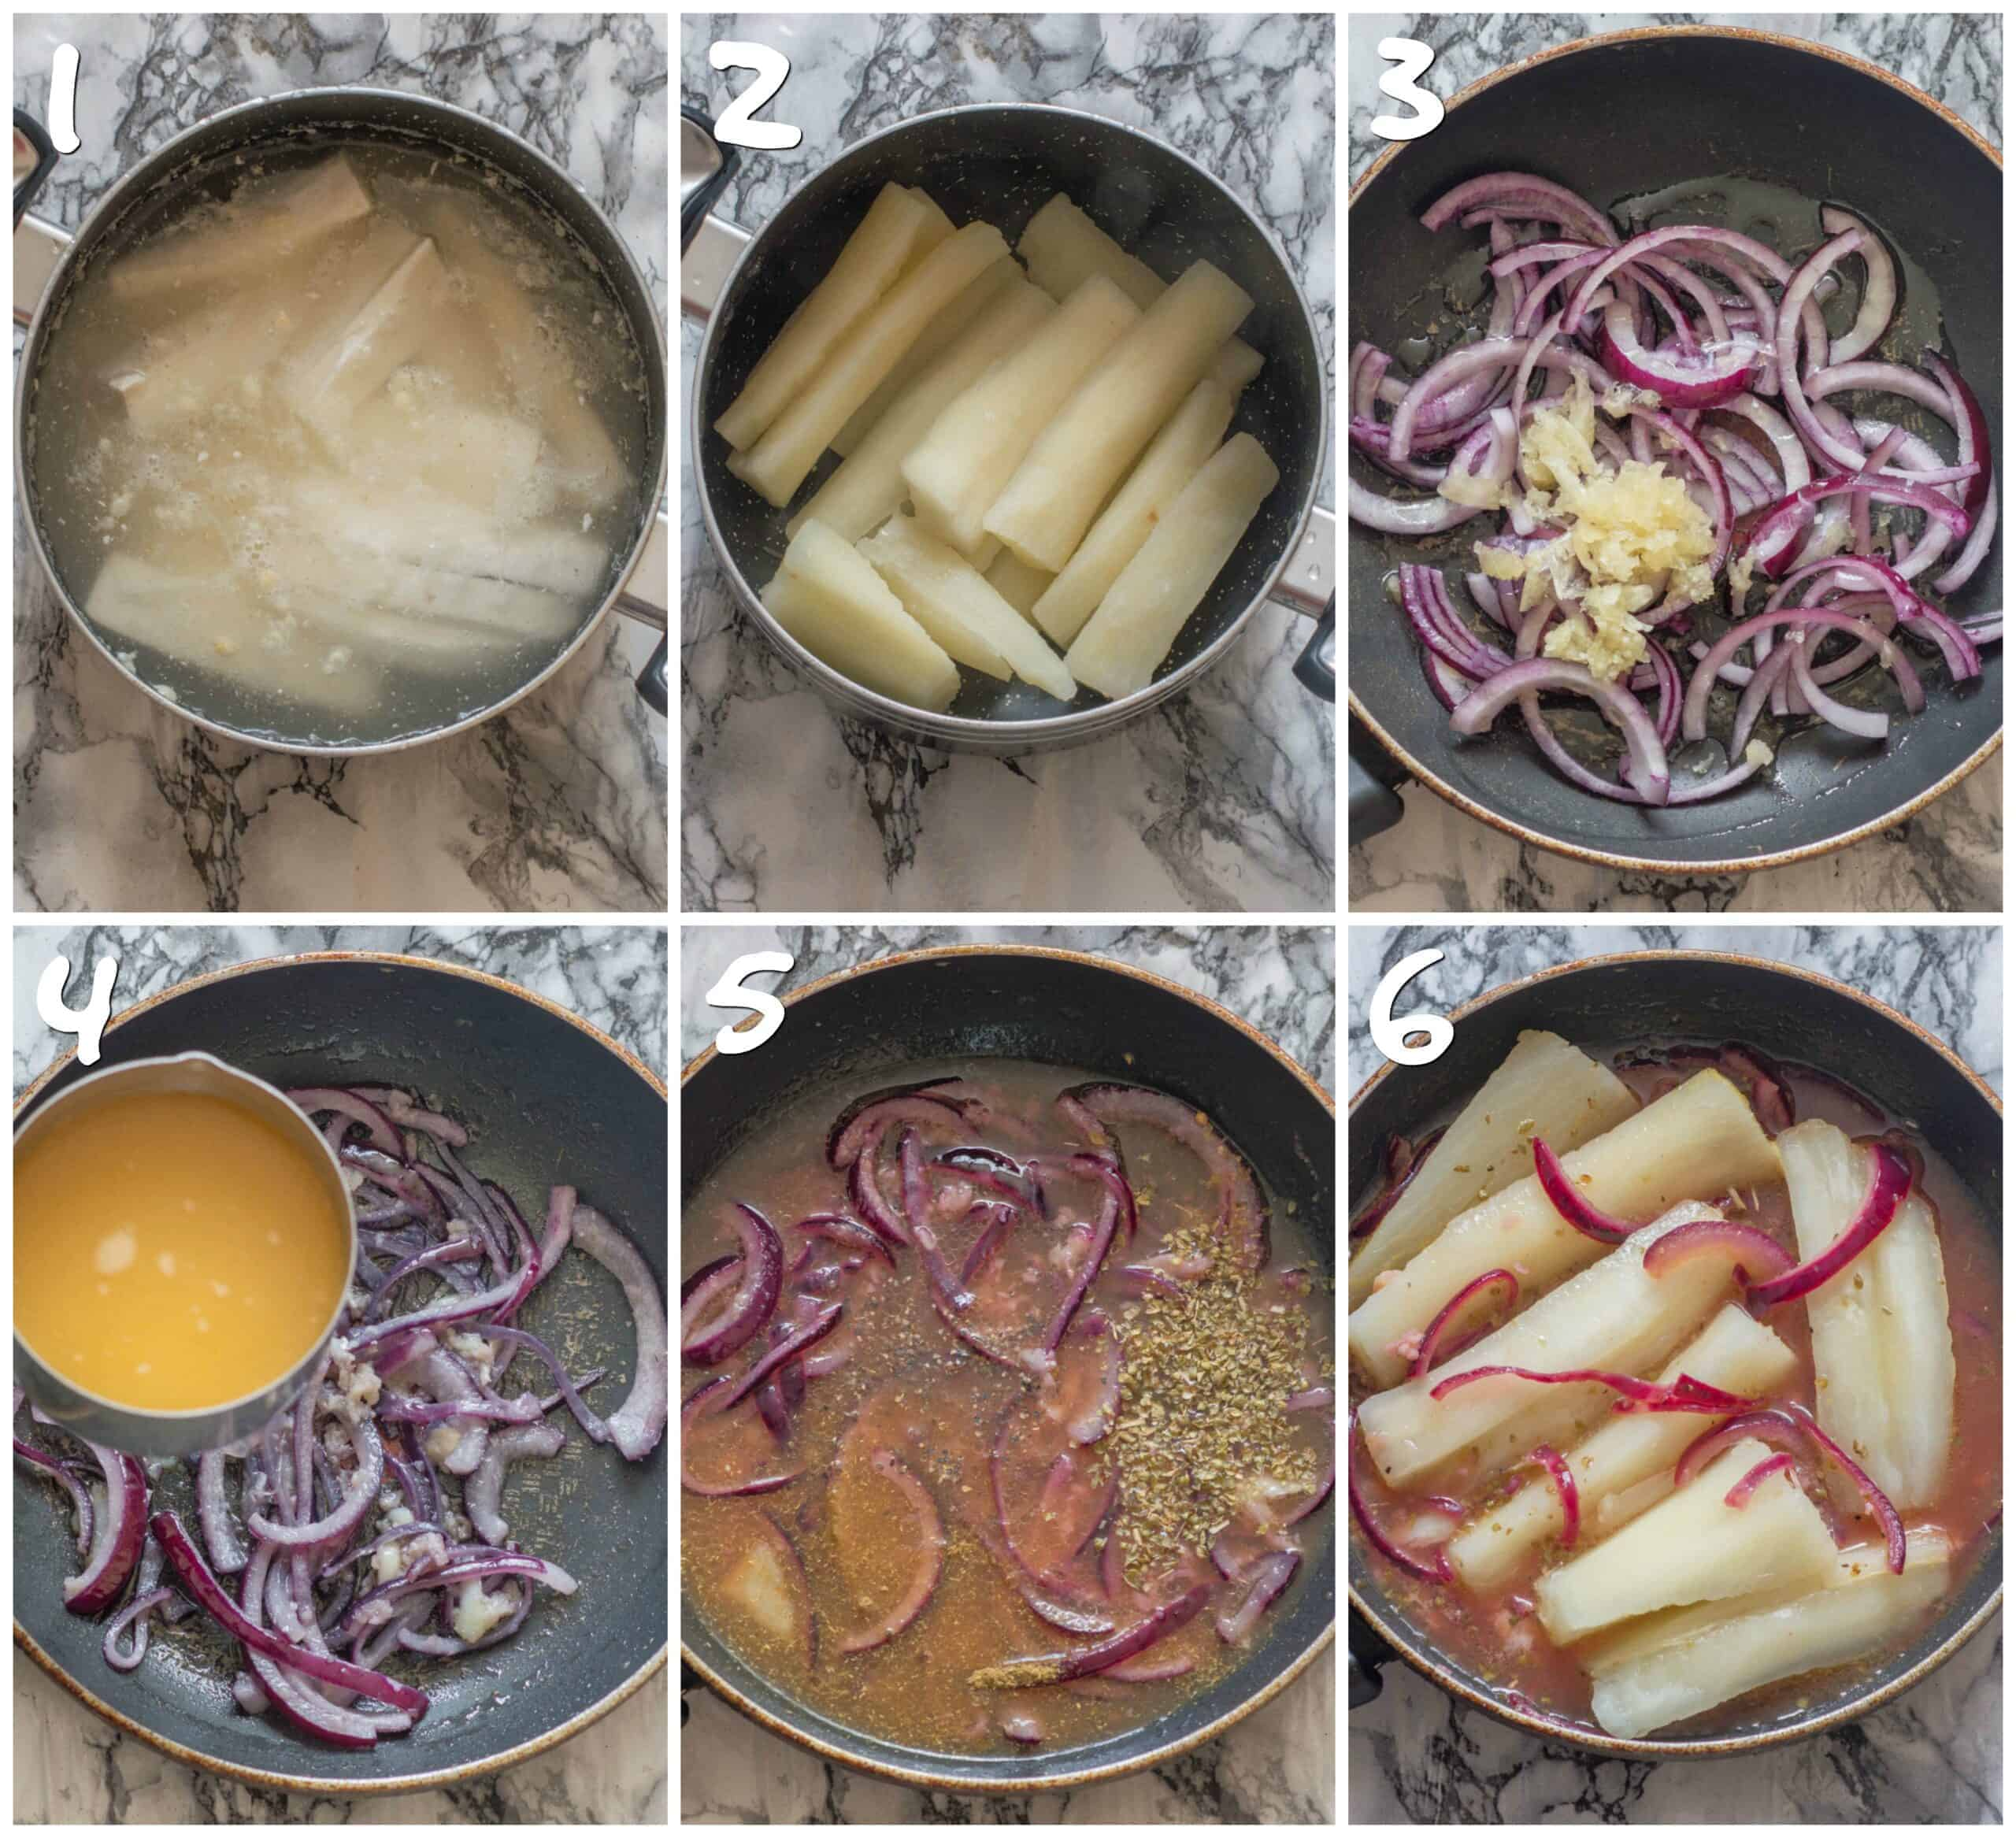 steps 1-6 cooking the yuca